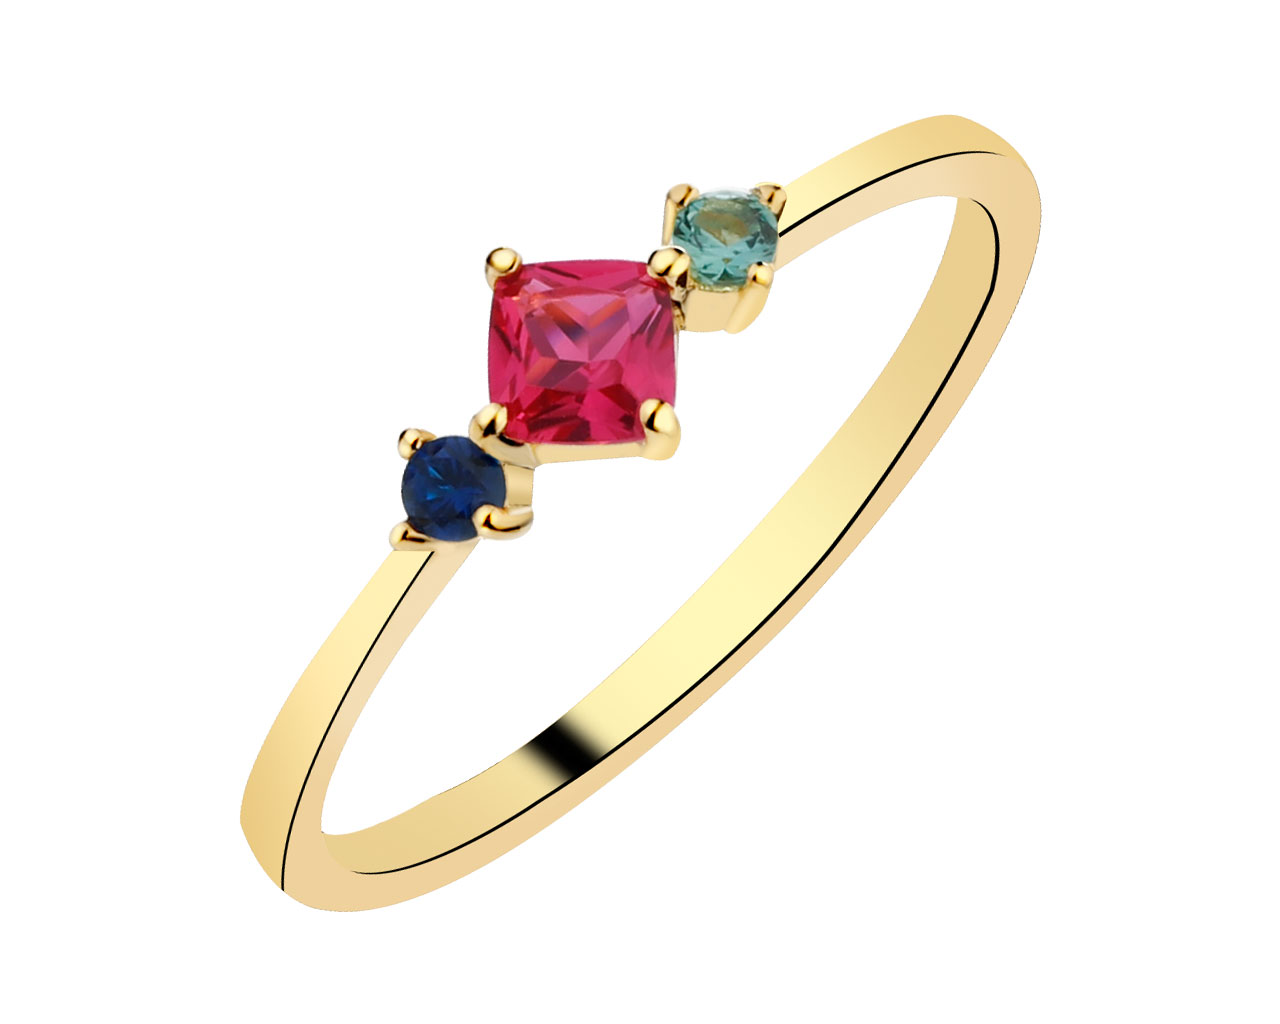 Gold-Plated Silver Ring with Cubic Zirconia